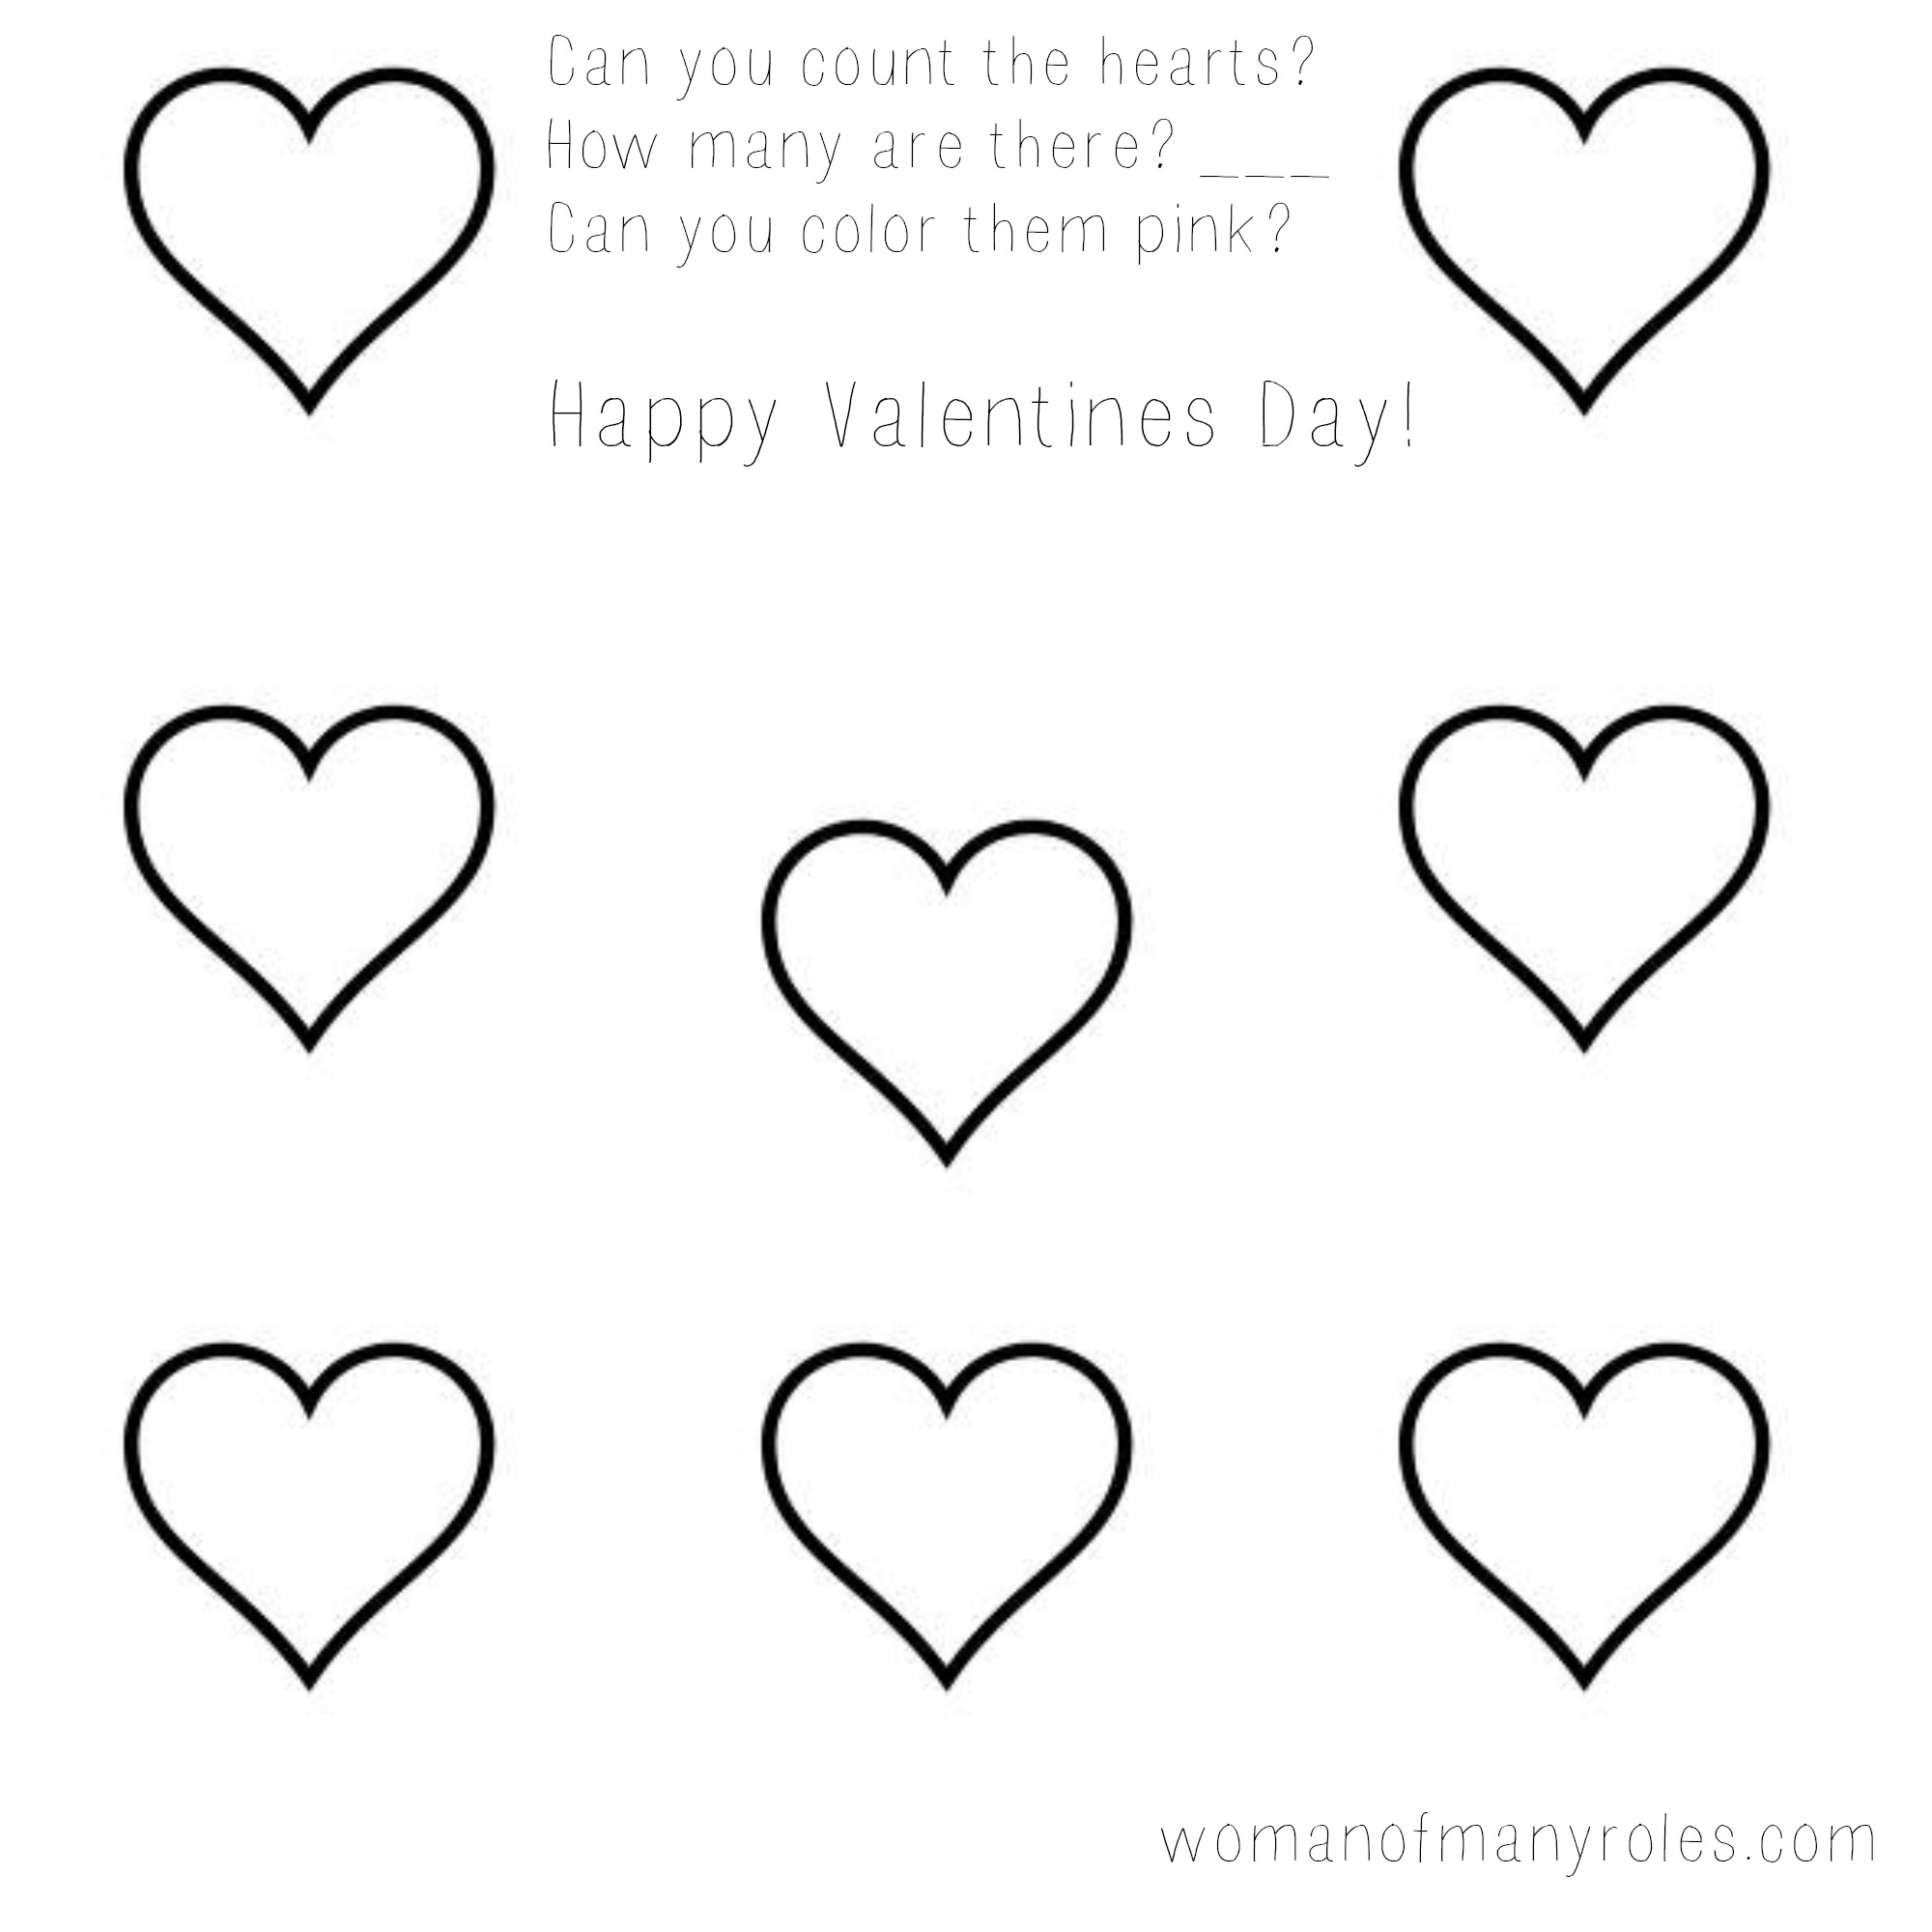 Heart Counting Printable Preschool Worksheet Woman Of Many Roles